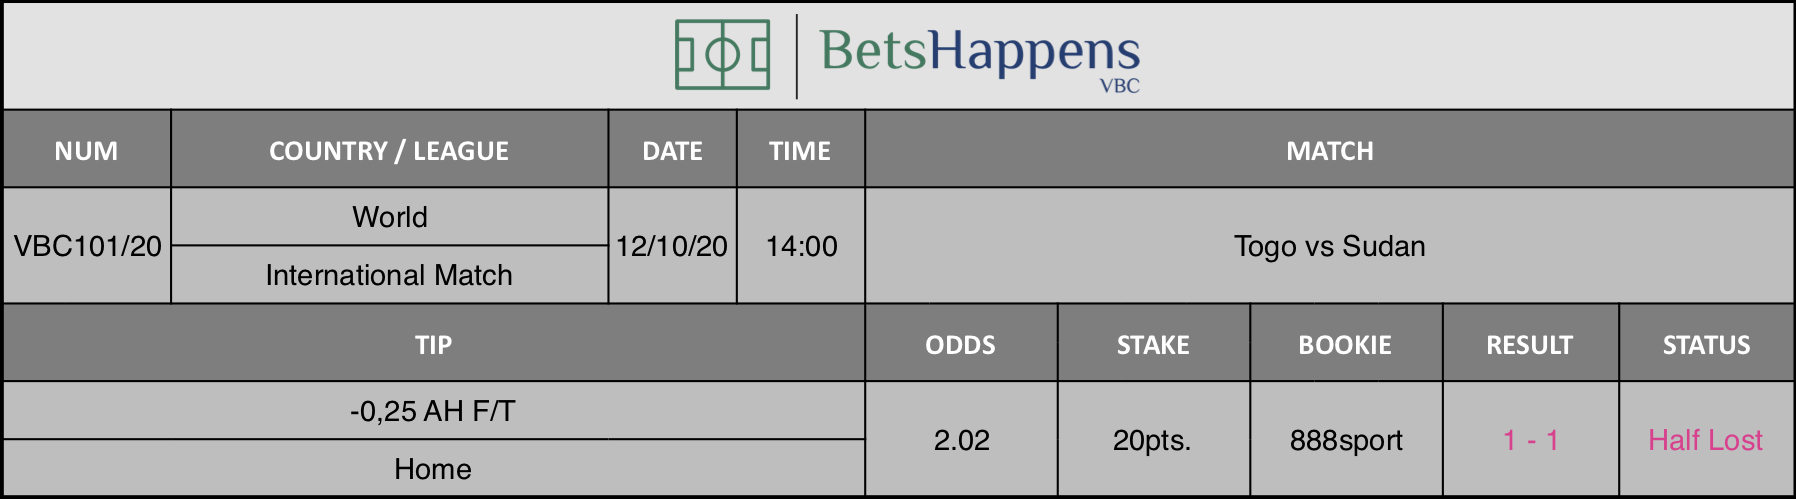 Results of our advice for the Togo vs Sudan match in which -0.25 AH F / T Home is recommended.